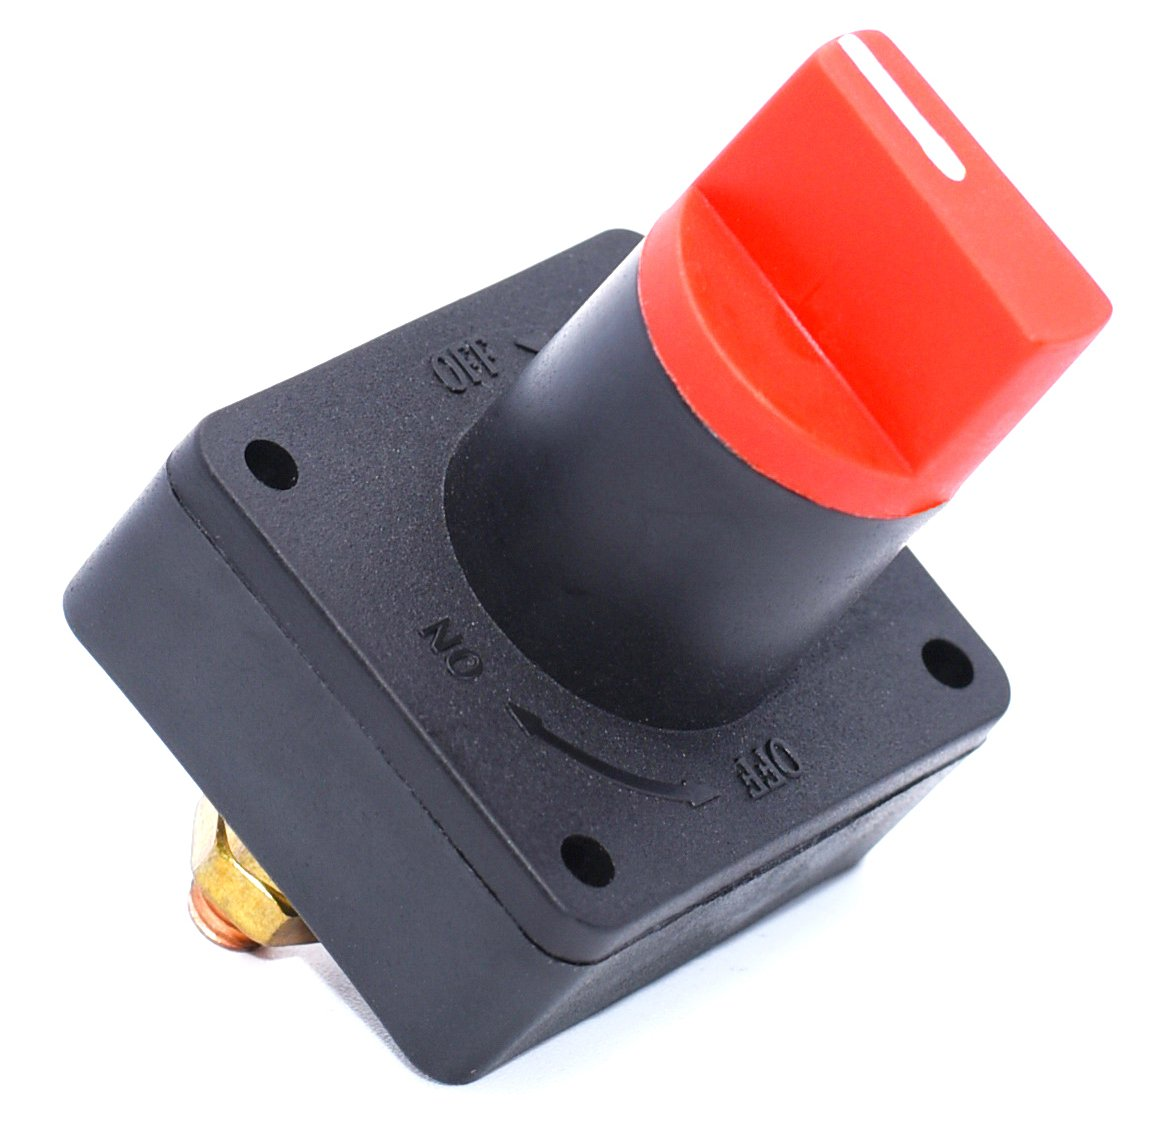 Cllena Rotary Battery Disconnect Isolator Power Kill Cut OFF Switch 300A for Car Boat Marine Van Truck Rv Caravan